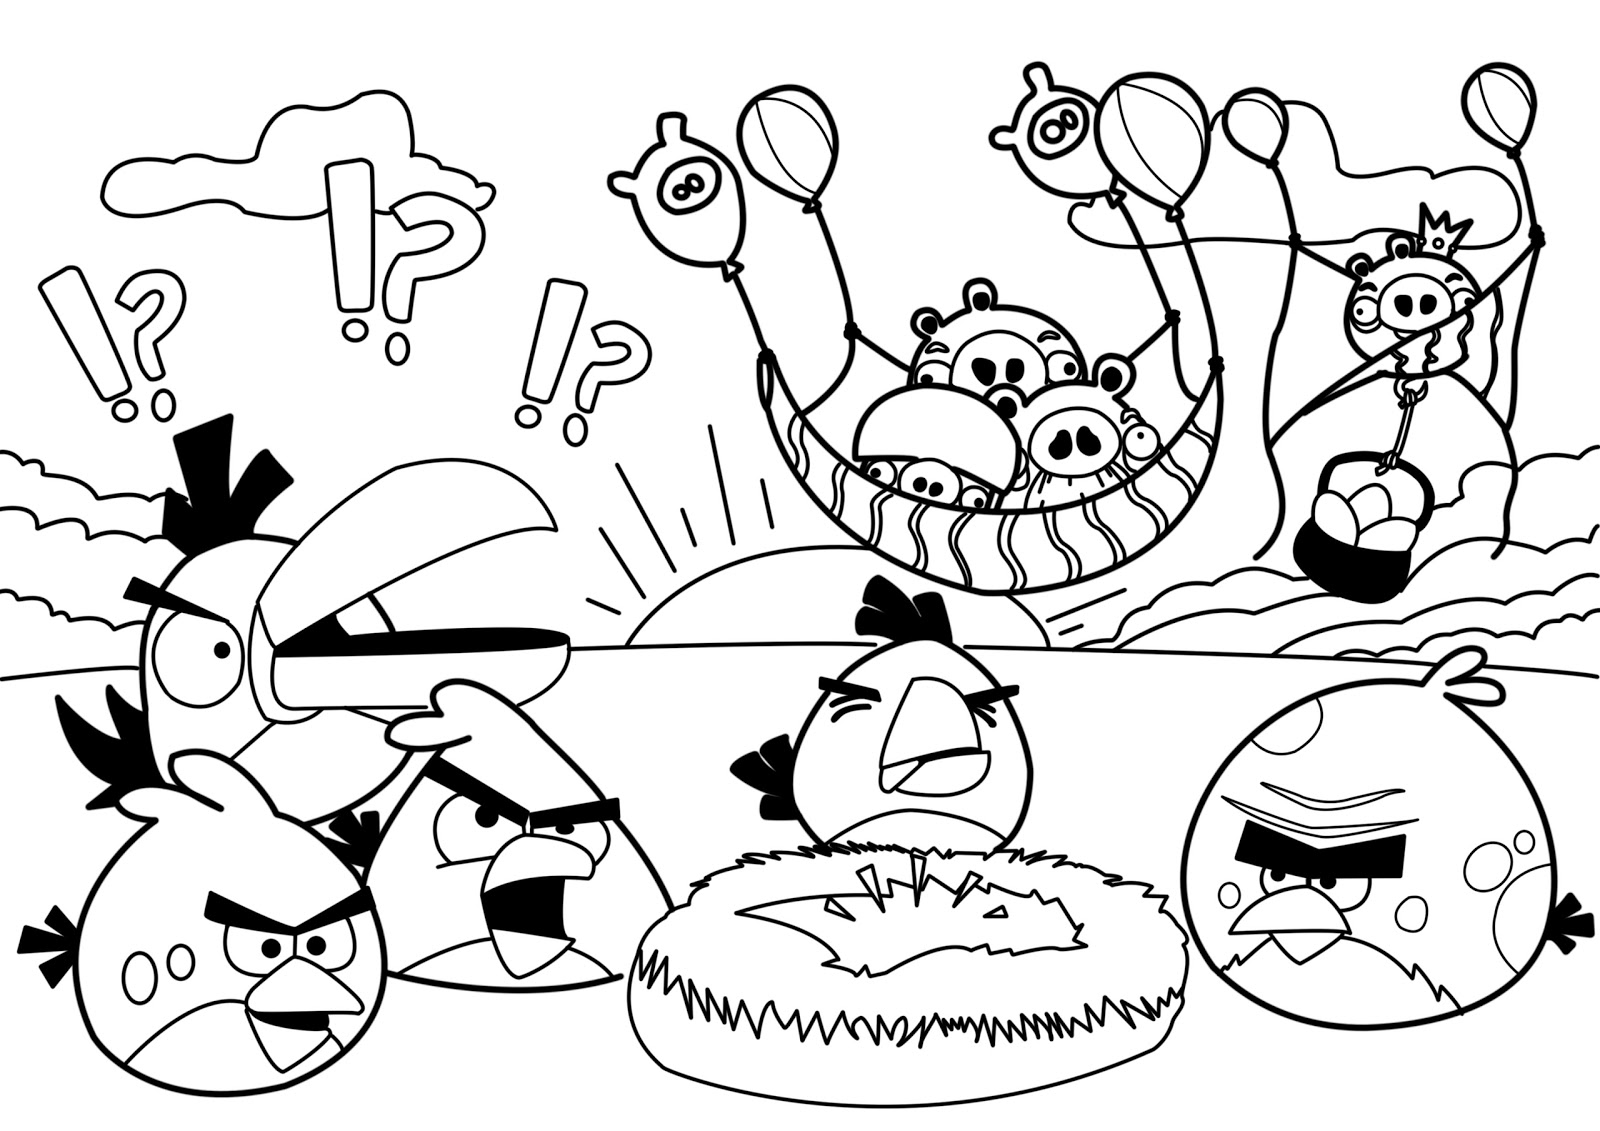 coloring pages for angry birds red angry bird coloring page at getcoloringscom free for birds angry coloring pages